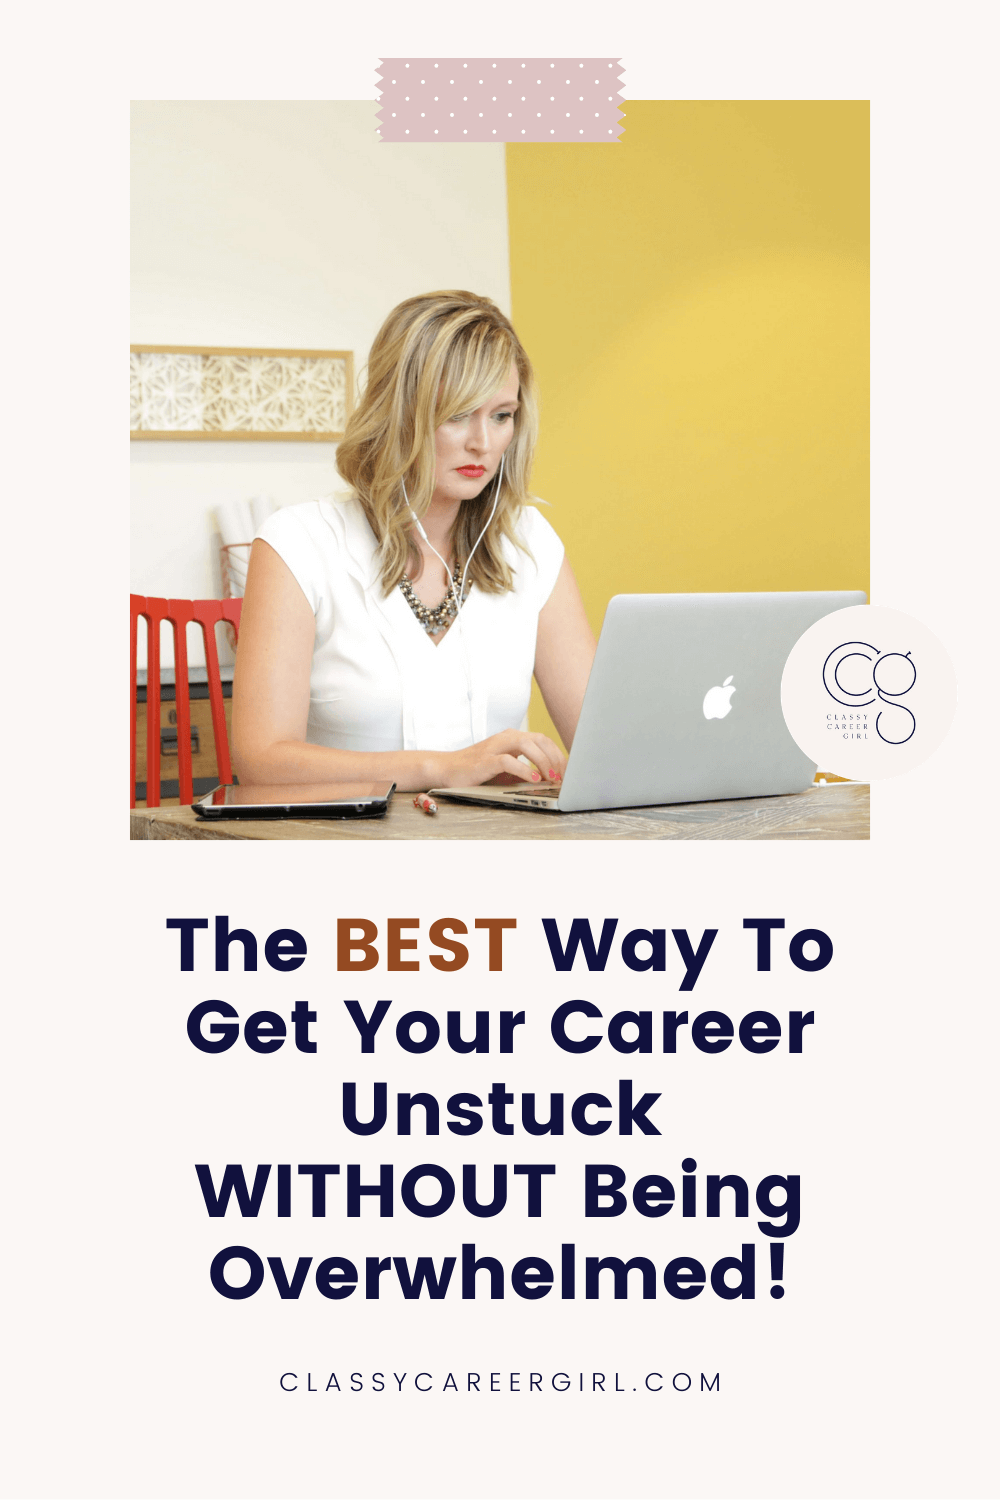 The BEST Way To Get Your Career Unstuck WITHOUT Being Overwhelmed